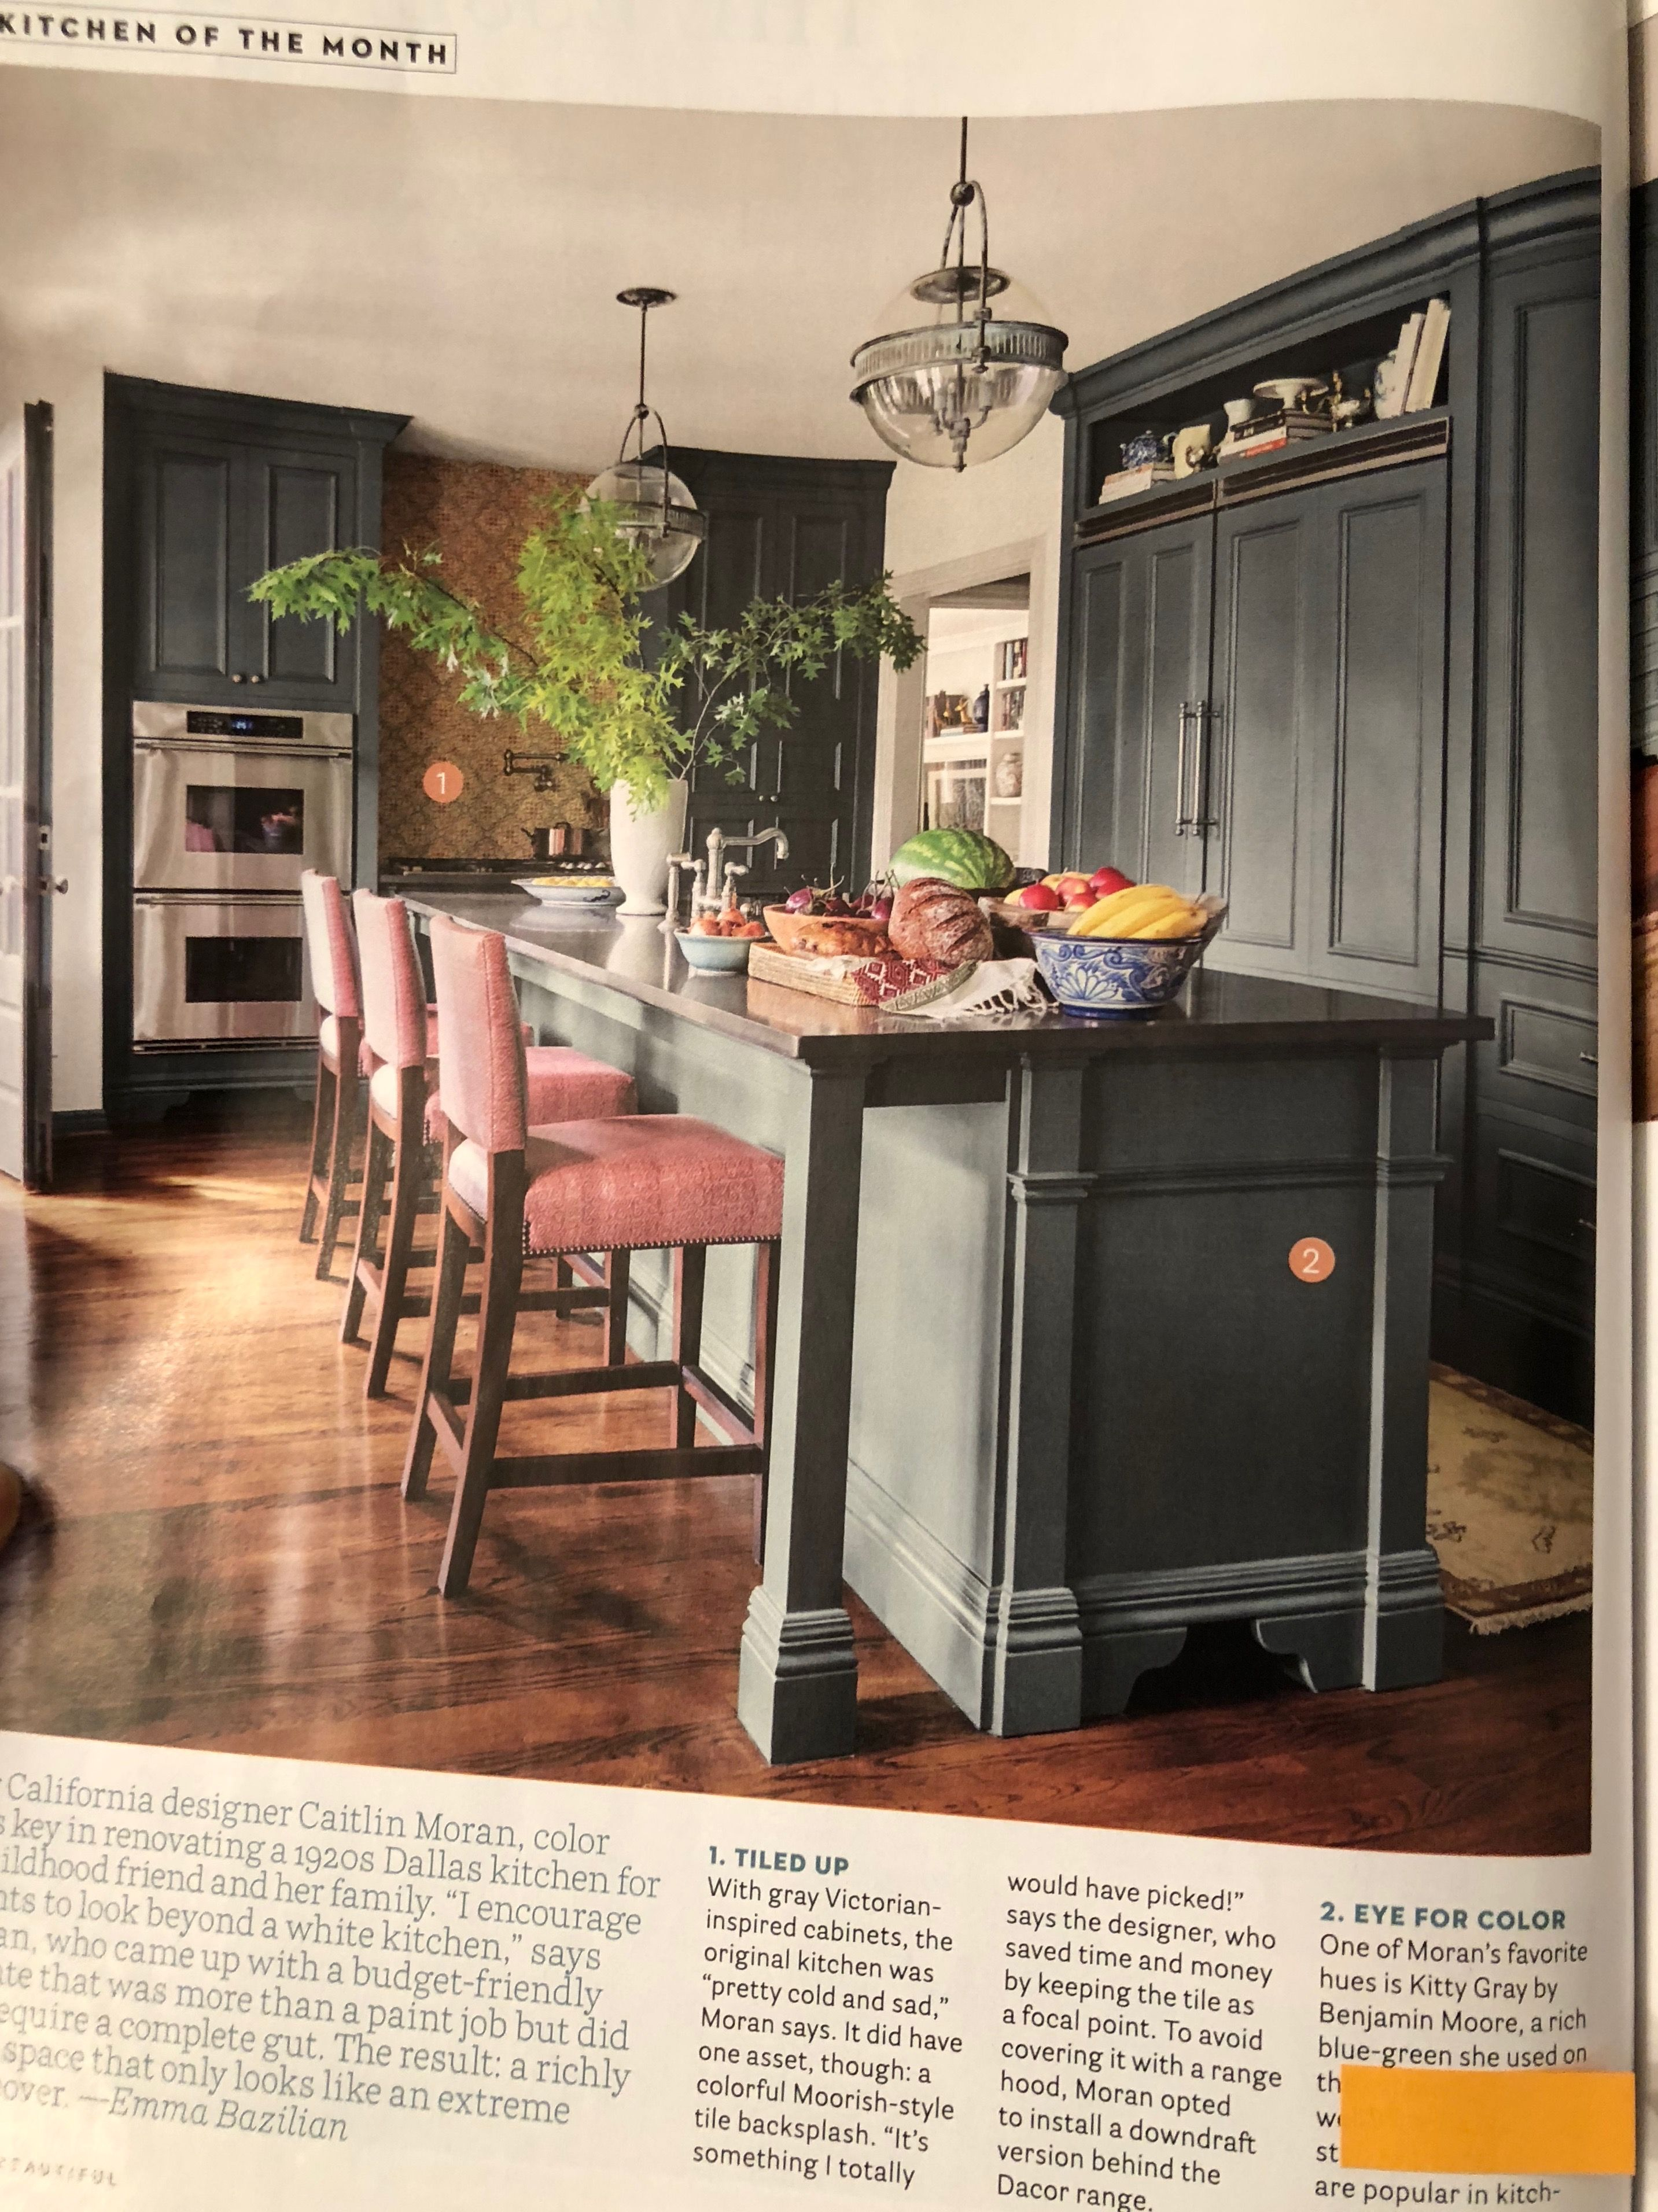 7ed36ee1805b1880071580933c3e05a7 Painting Kitchen Color Ideas on kitchen decal ideas, furniture painting color ideas, cabinet painting color ideas, wedding color ideas, basement painting color ideas, home painting color ideas, interior painting color ideas, kitchen painting design ideas, foyer painting color ideas, kitchen texture ideas, deck painting color ideas, house painting color ideas, living room painting color ideas, bedroom painting color ideas,